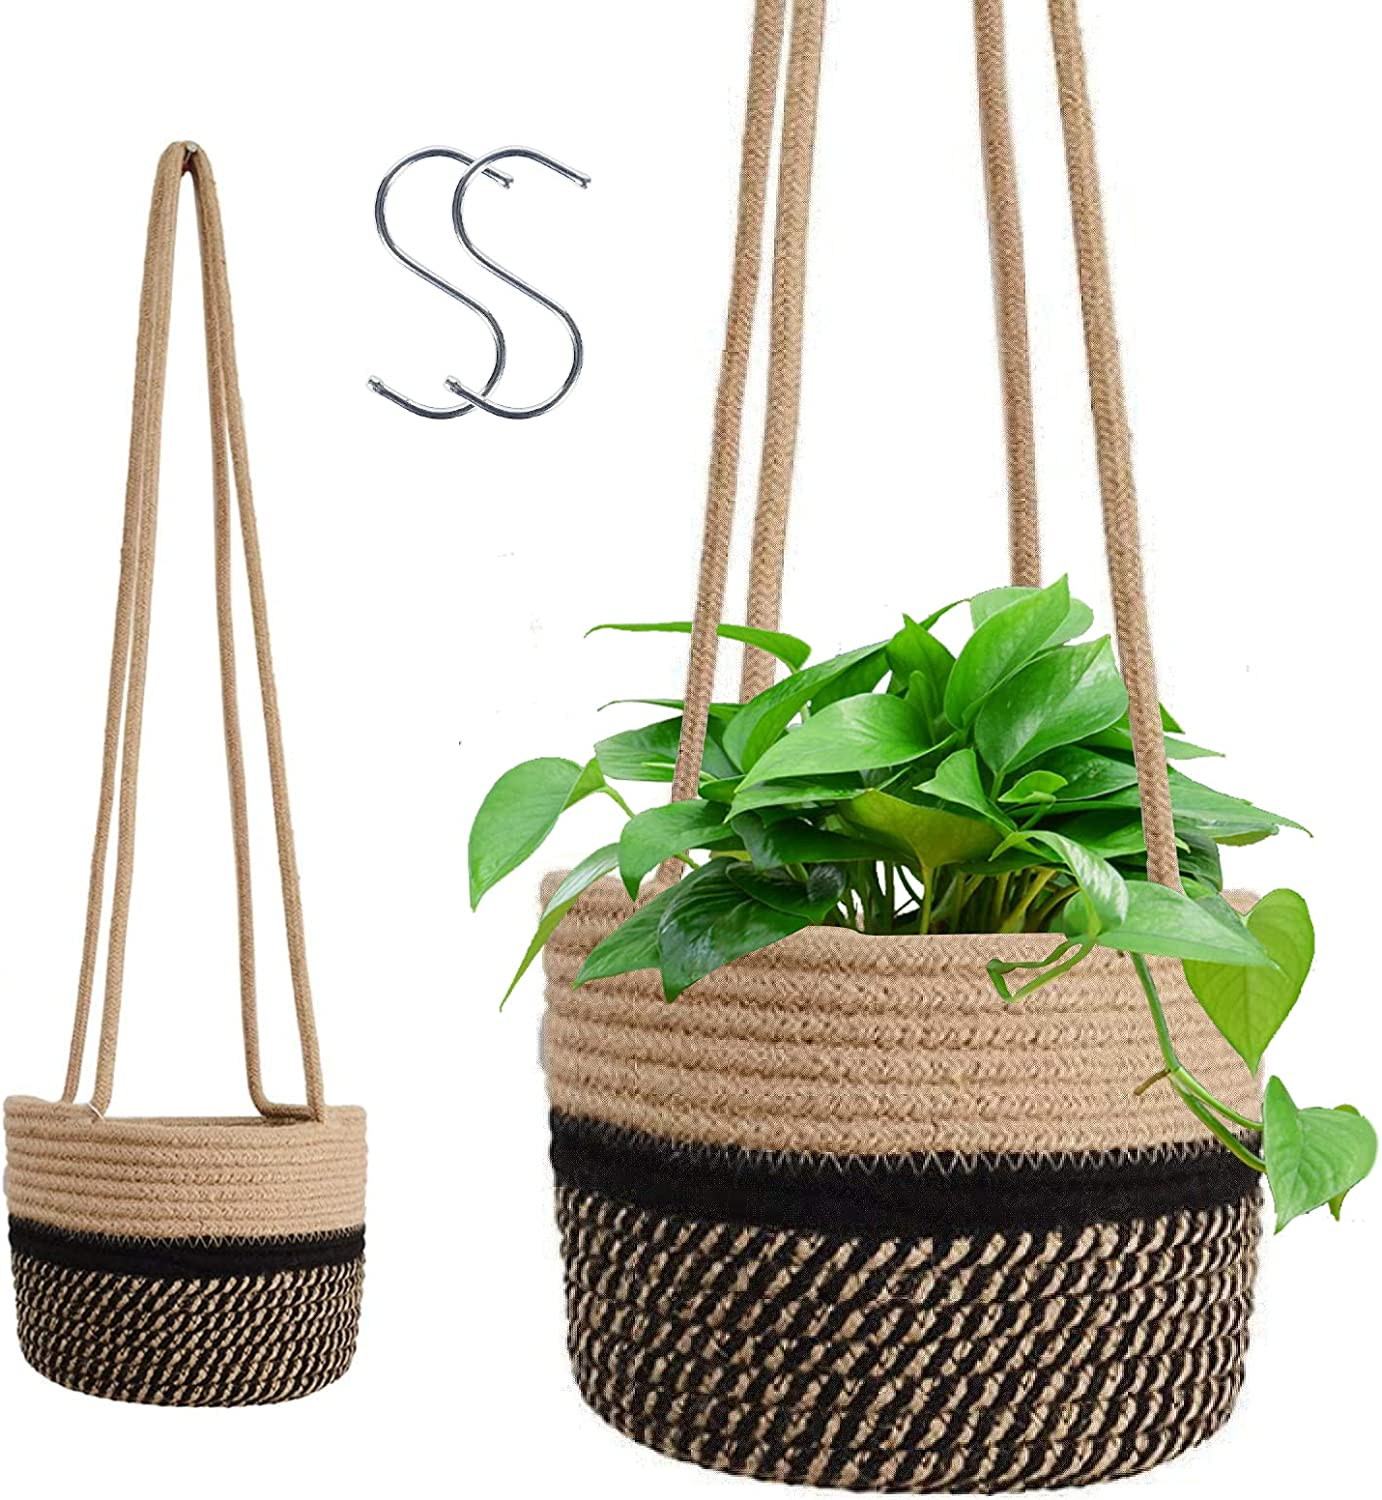 2021 autumn and winter new WHATWEARS Hanging Rope Planter Basket Cotton Bombing new work Pack Woven 2